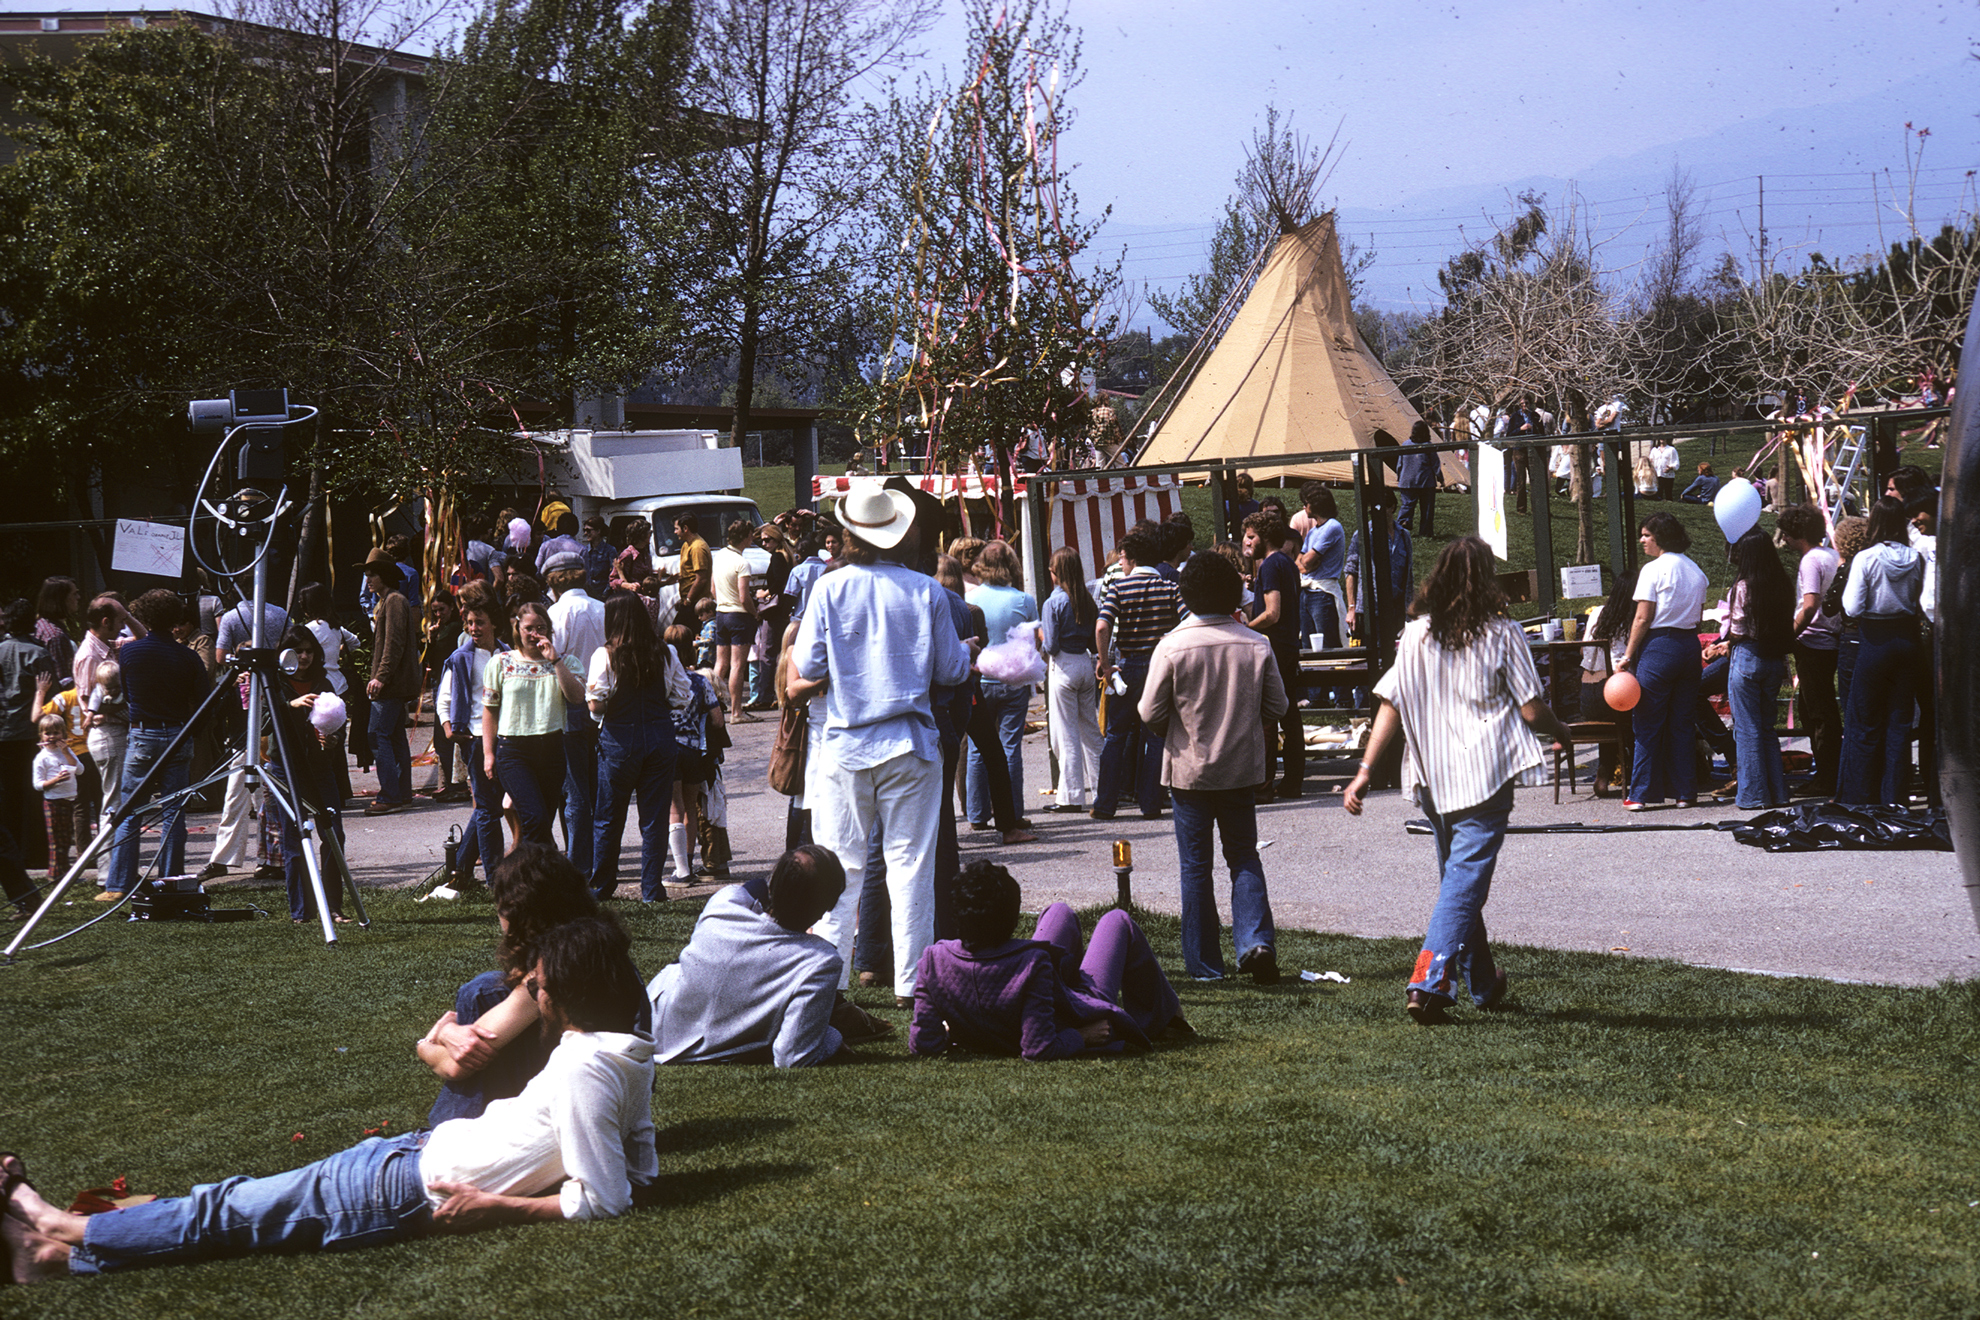 Kohoutek 1975 - The crowd relaxes on the grass in front of McConnell Center.